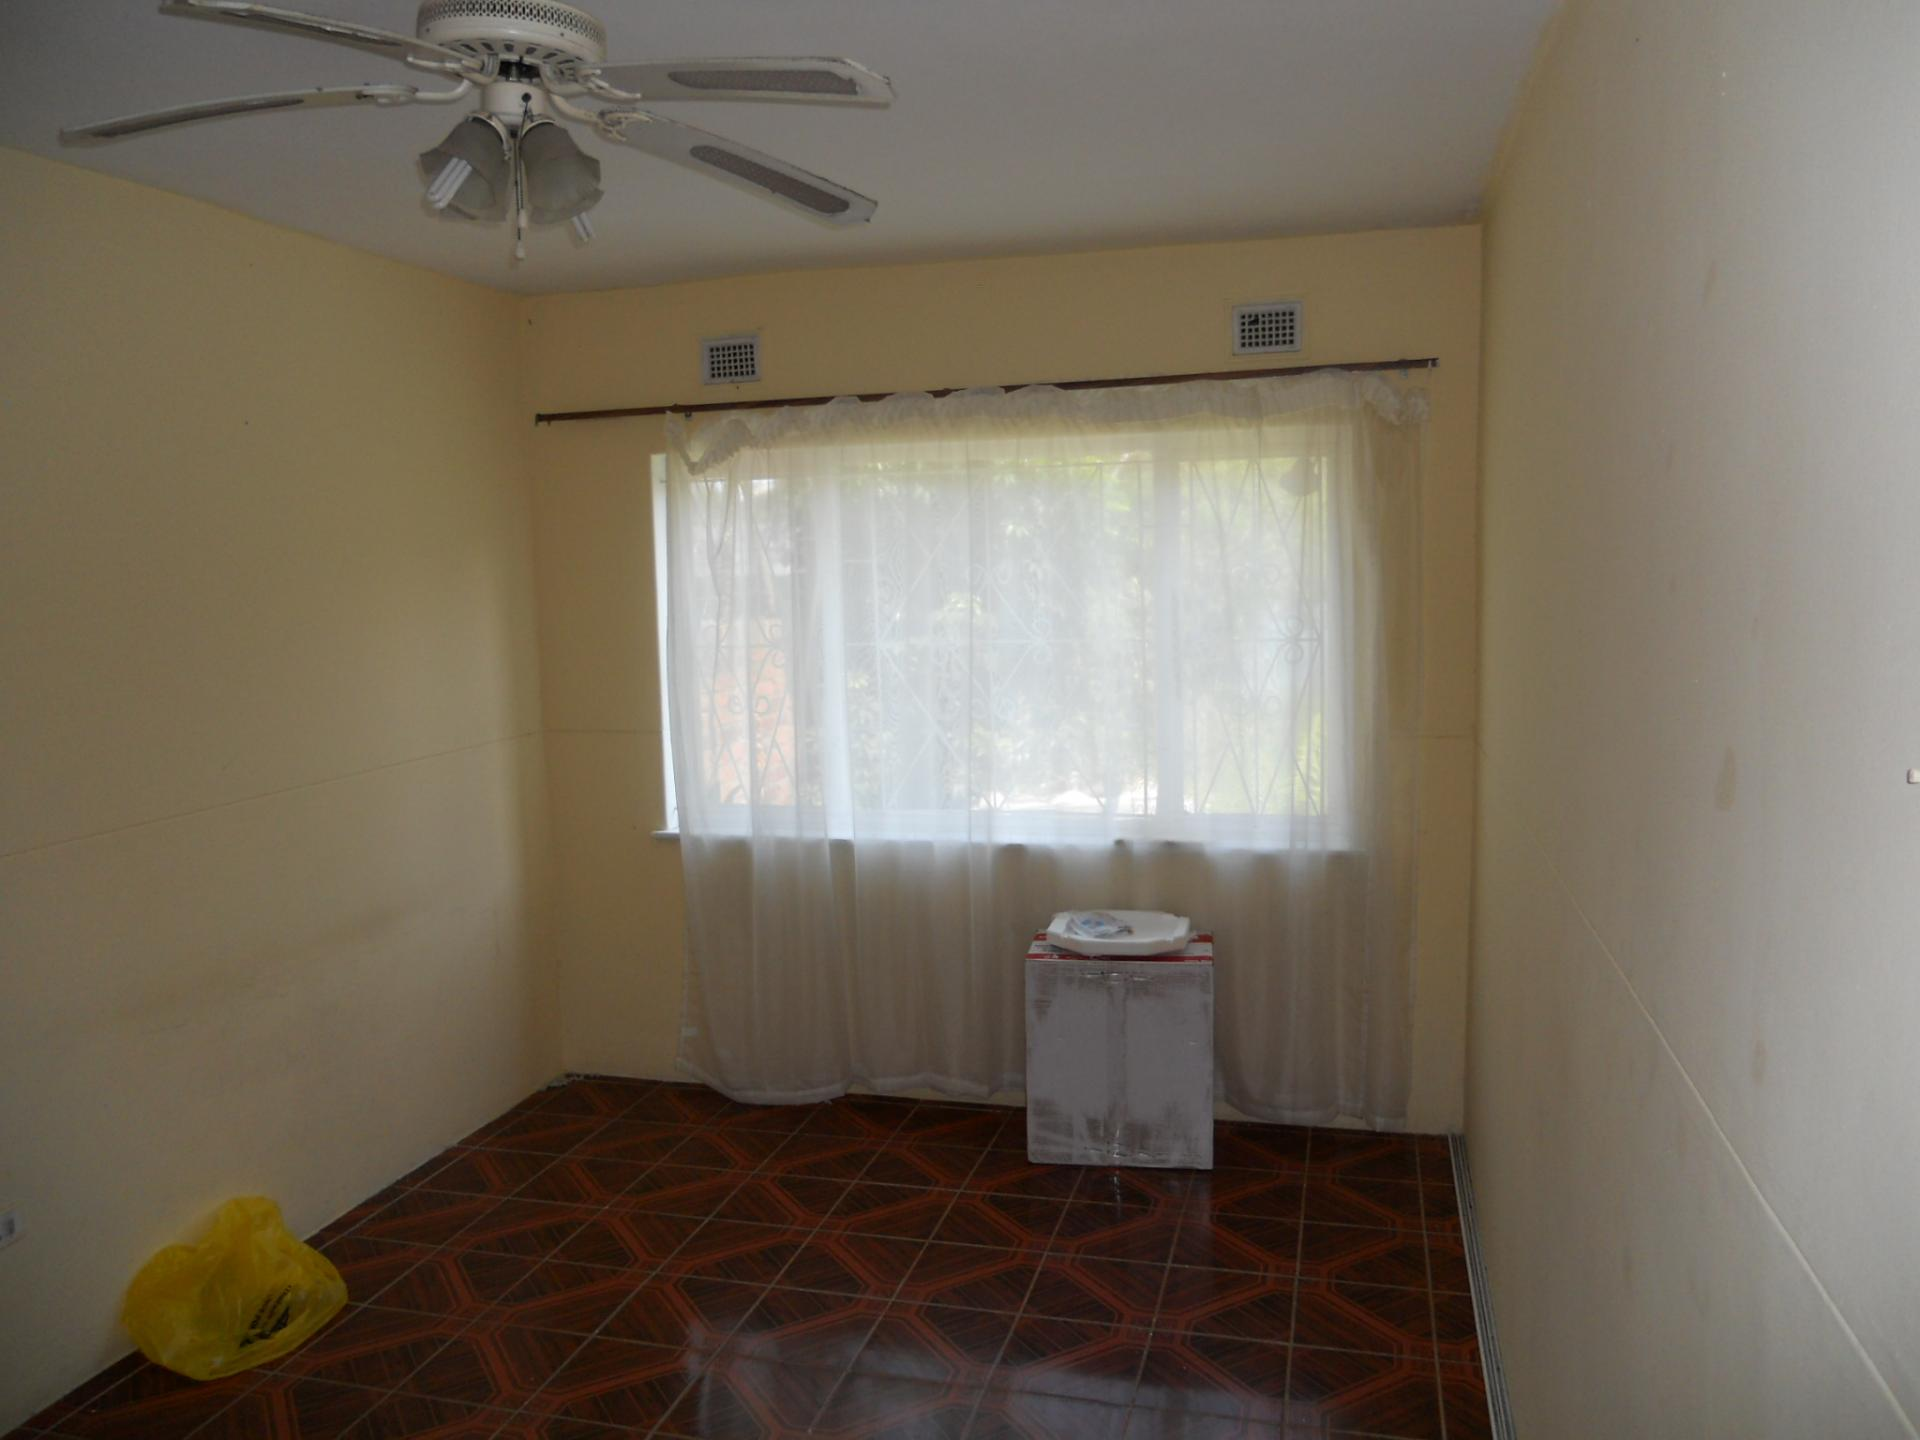 Countertop Dishwasher Durban : MyRoof - 3 Bedroom Apartment for Sale For Sale in Verulam - Home Sell ...